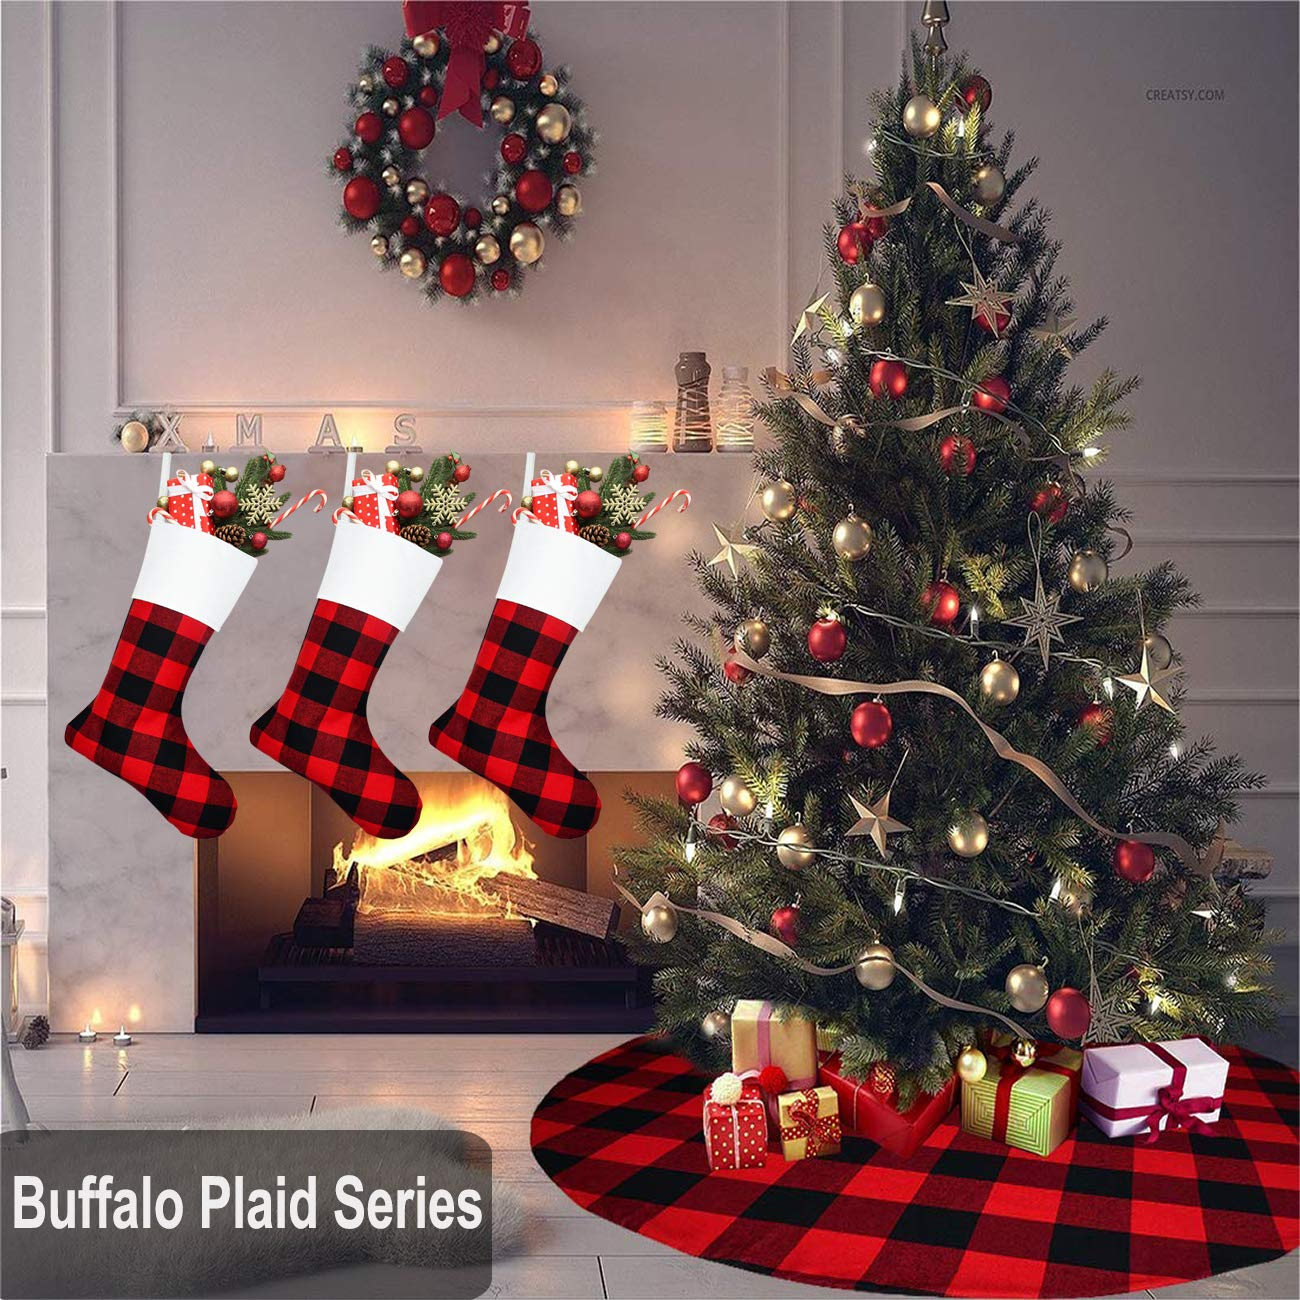 Christmas 18 inches Buffalo Plaid Classic Stockings Xmas Decorations for Family